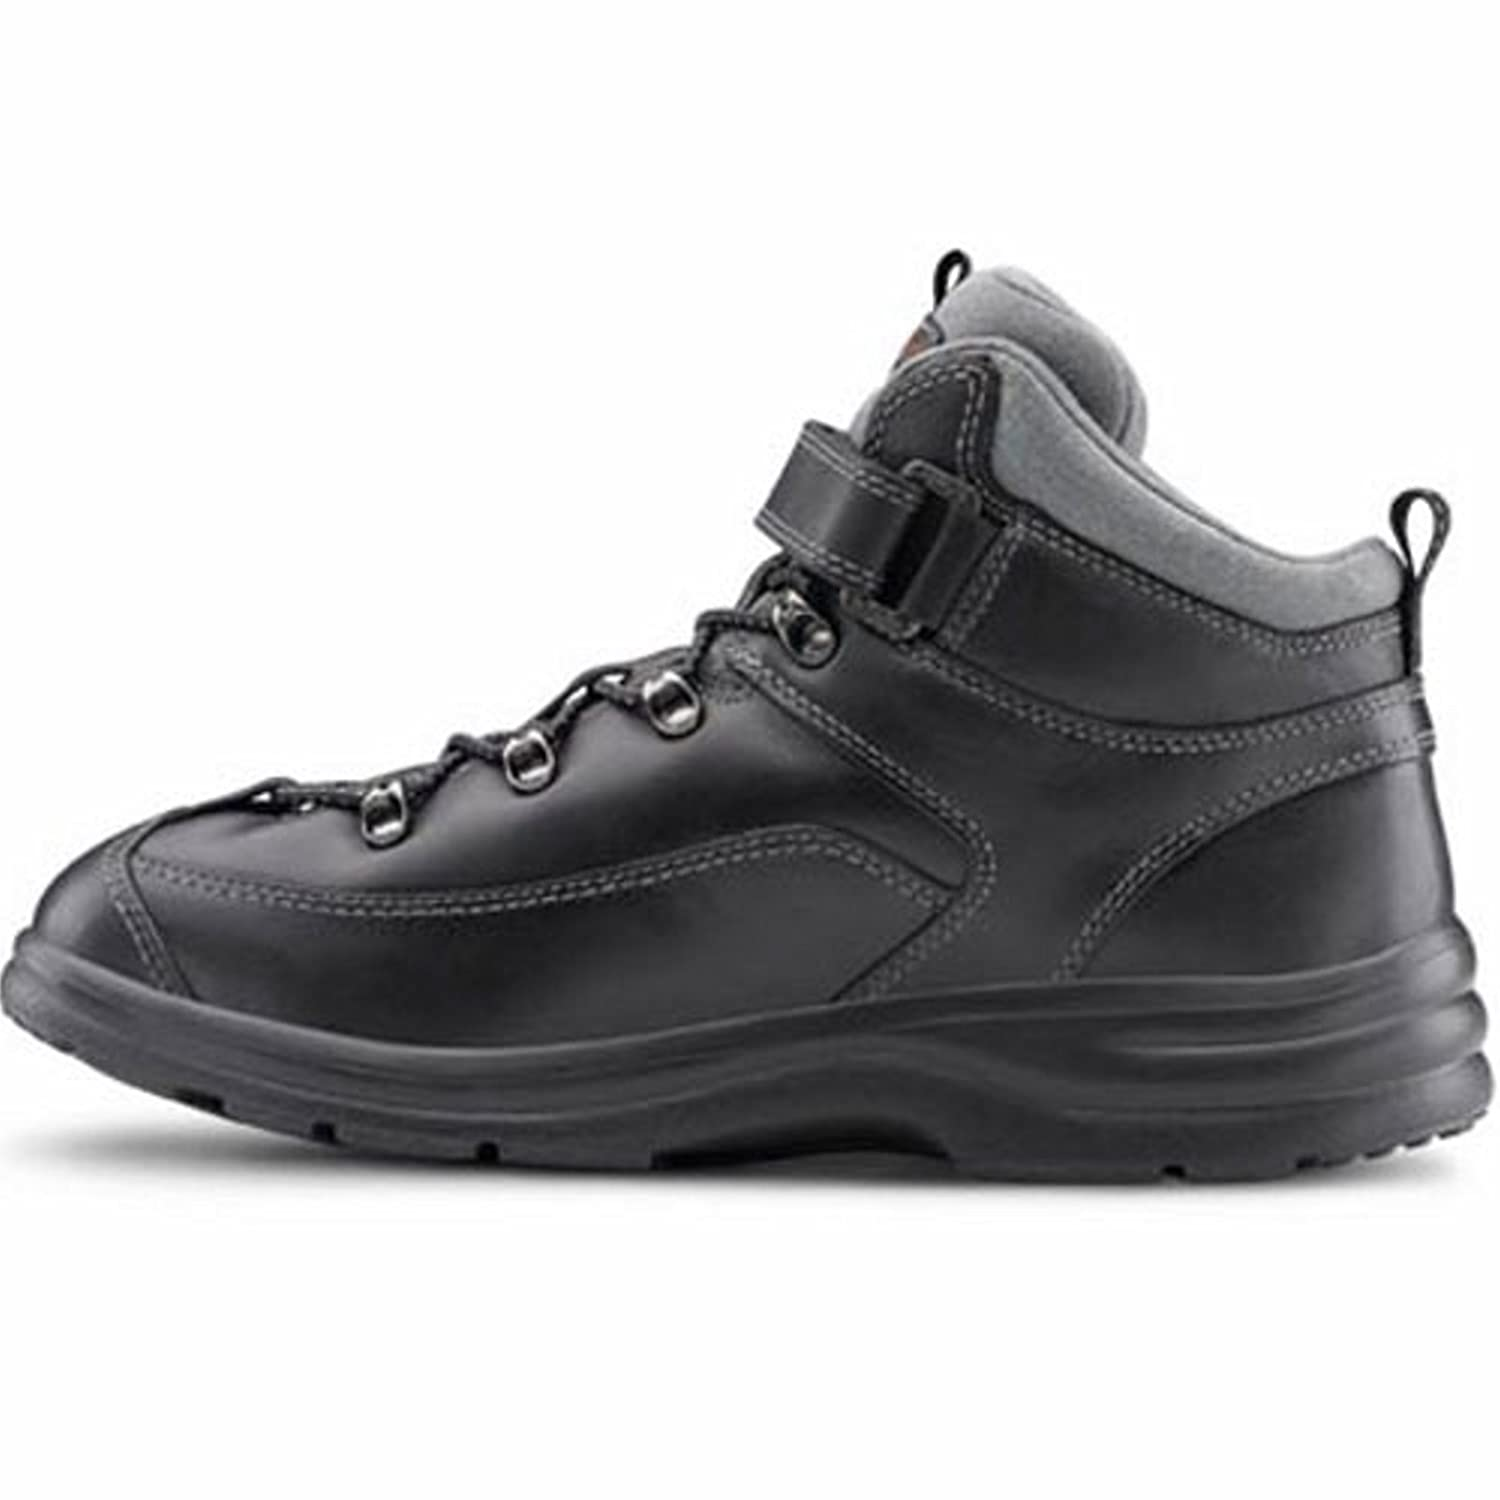 Dr. Comfort Vigor Women's Therapeutic Diabetic Extra Depth Hiking -4.0 Boot Leather Lace B00IO6JFI0 -4.0 Hiking X-Wide (E-2E) Black Lace US Woman|Black ca2610